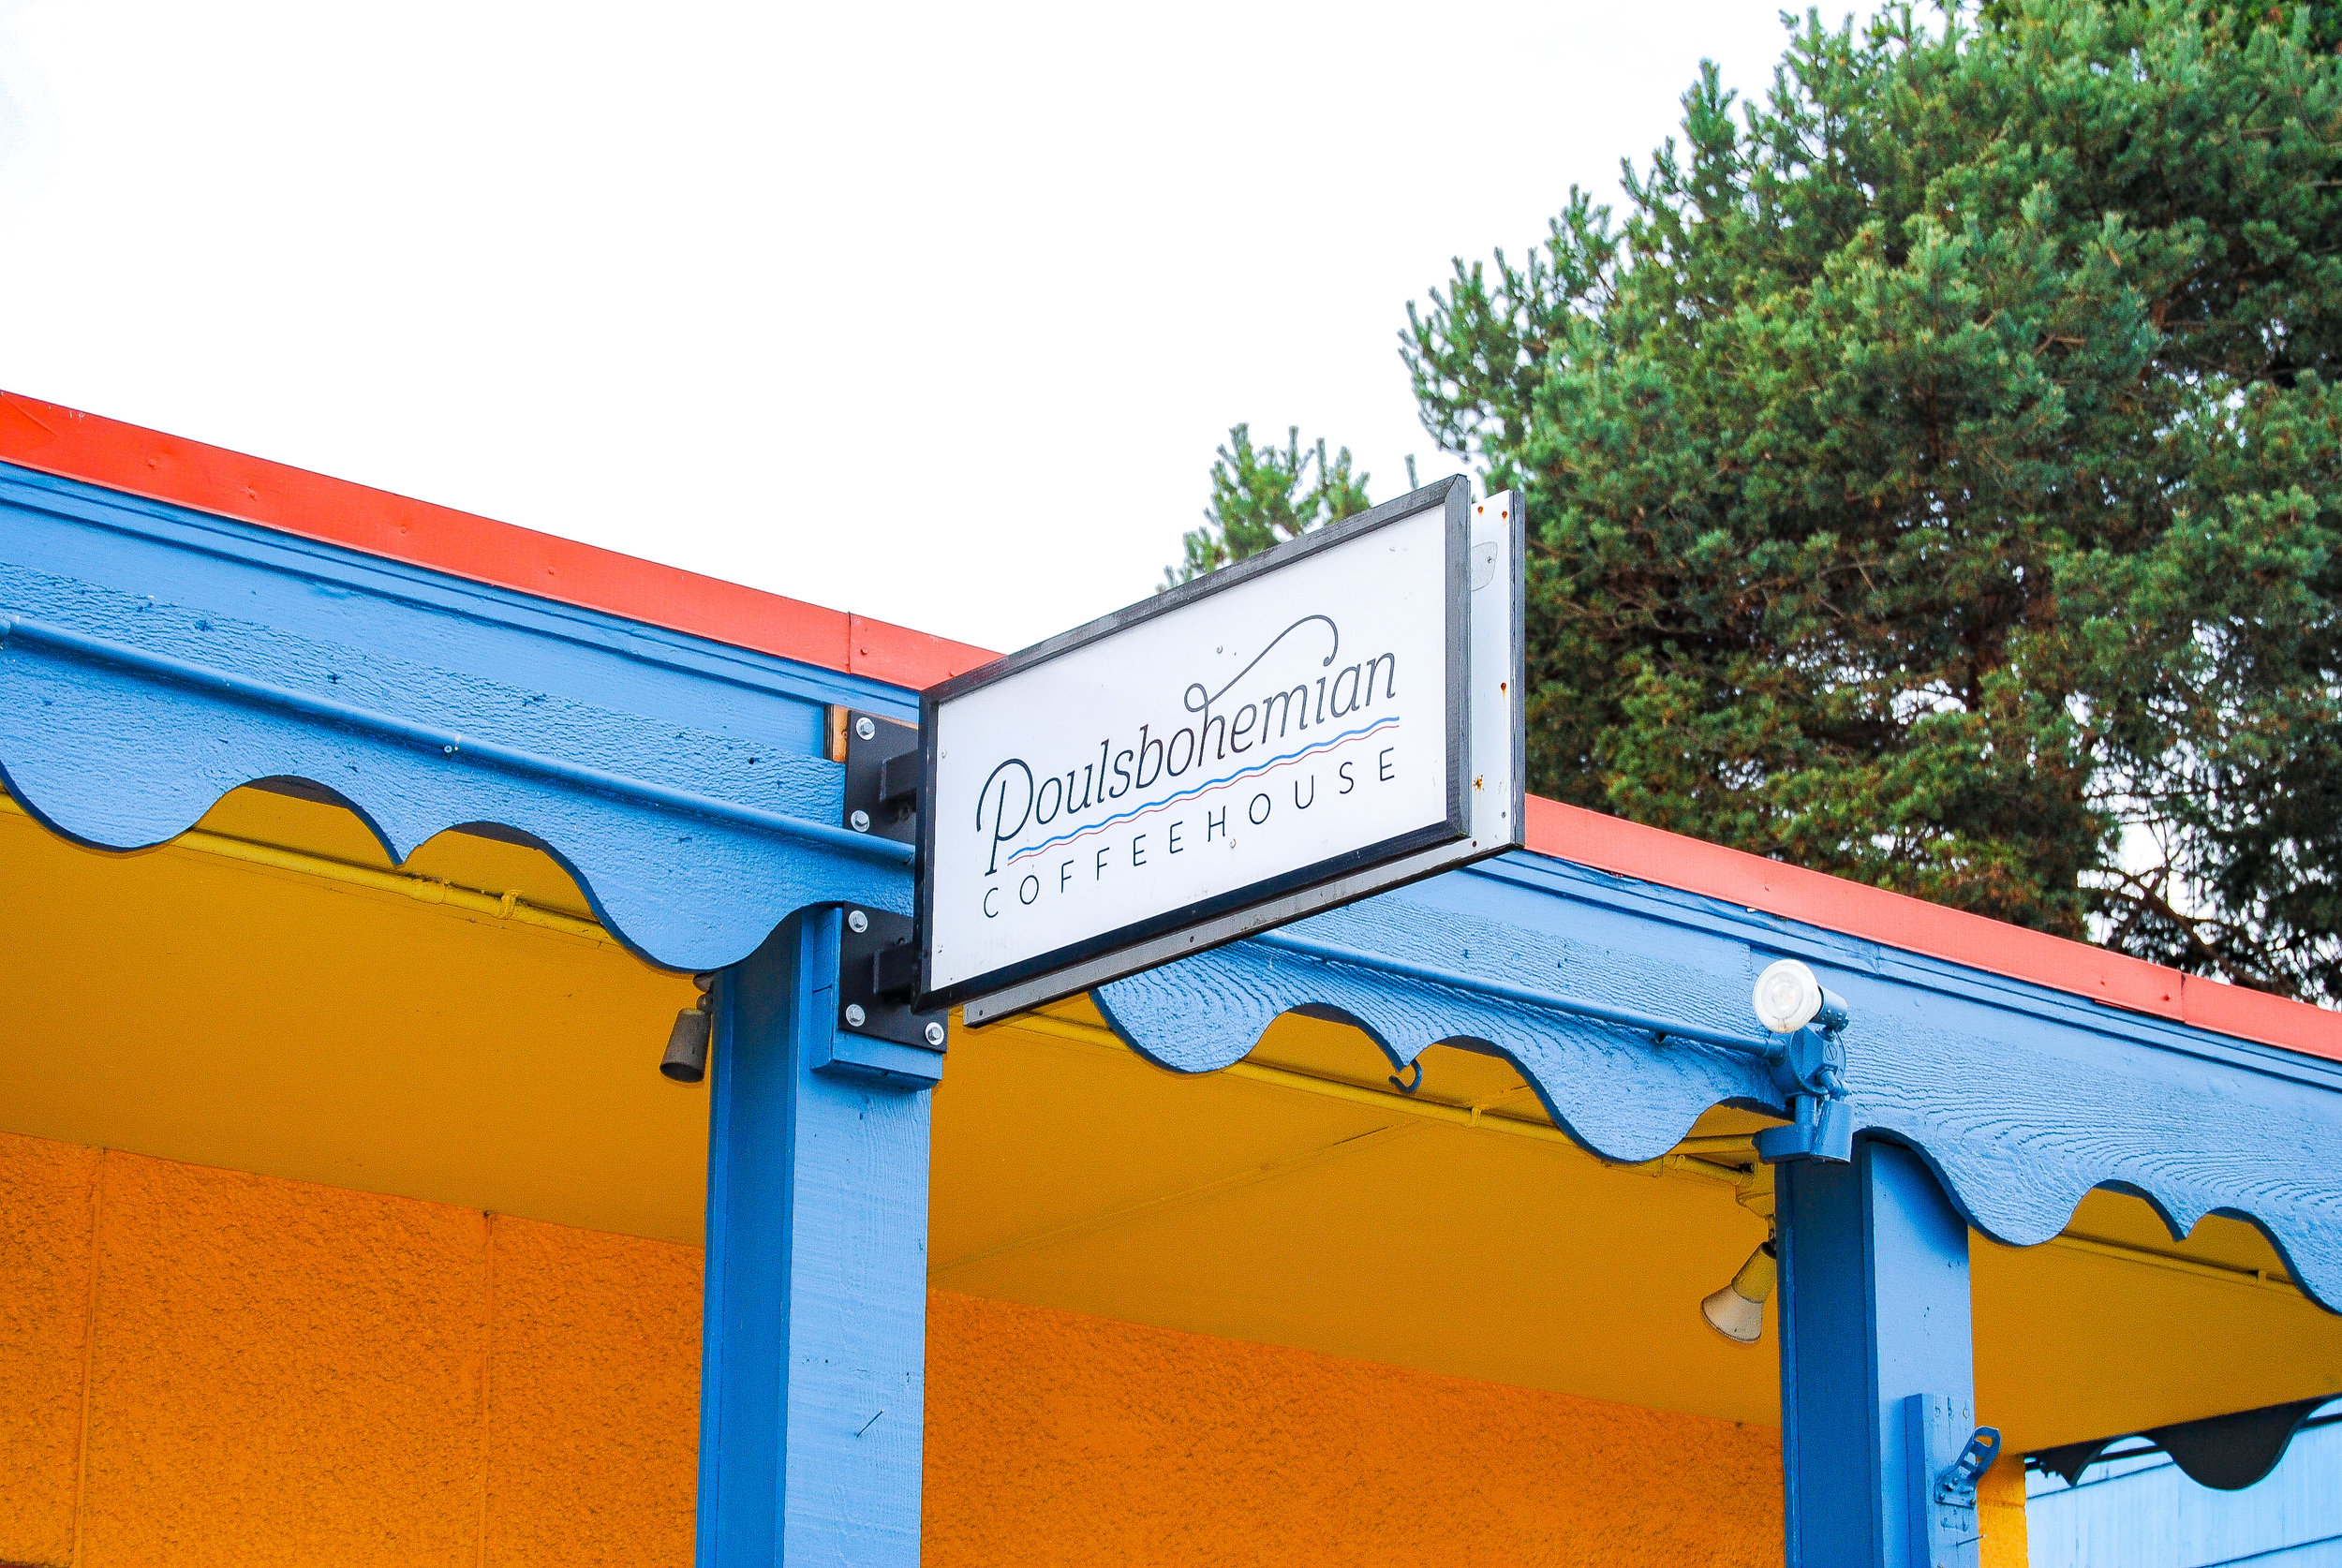 Poulsbohemian Coffeehouse - Spectacular views of the Bay, with outdoor seating and dog/kid-friendly environment